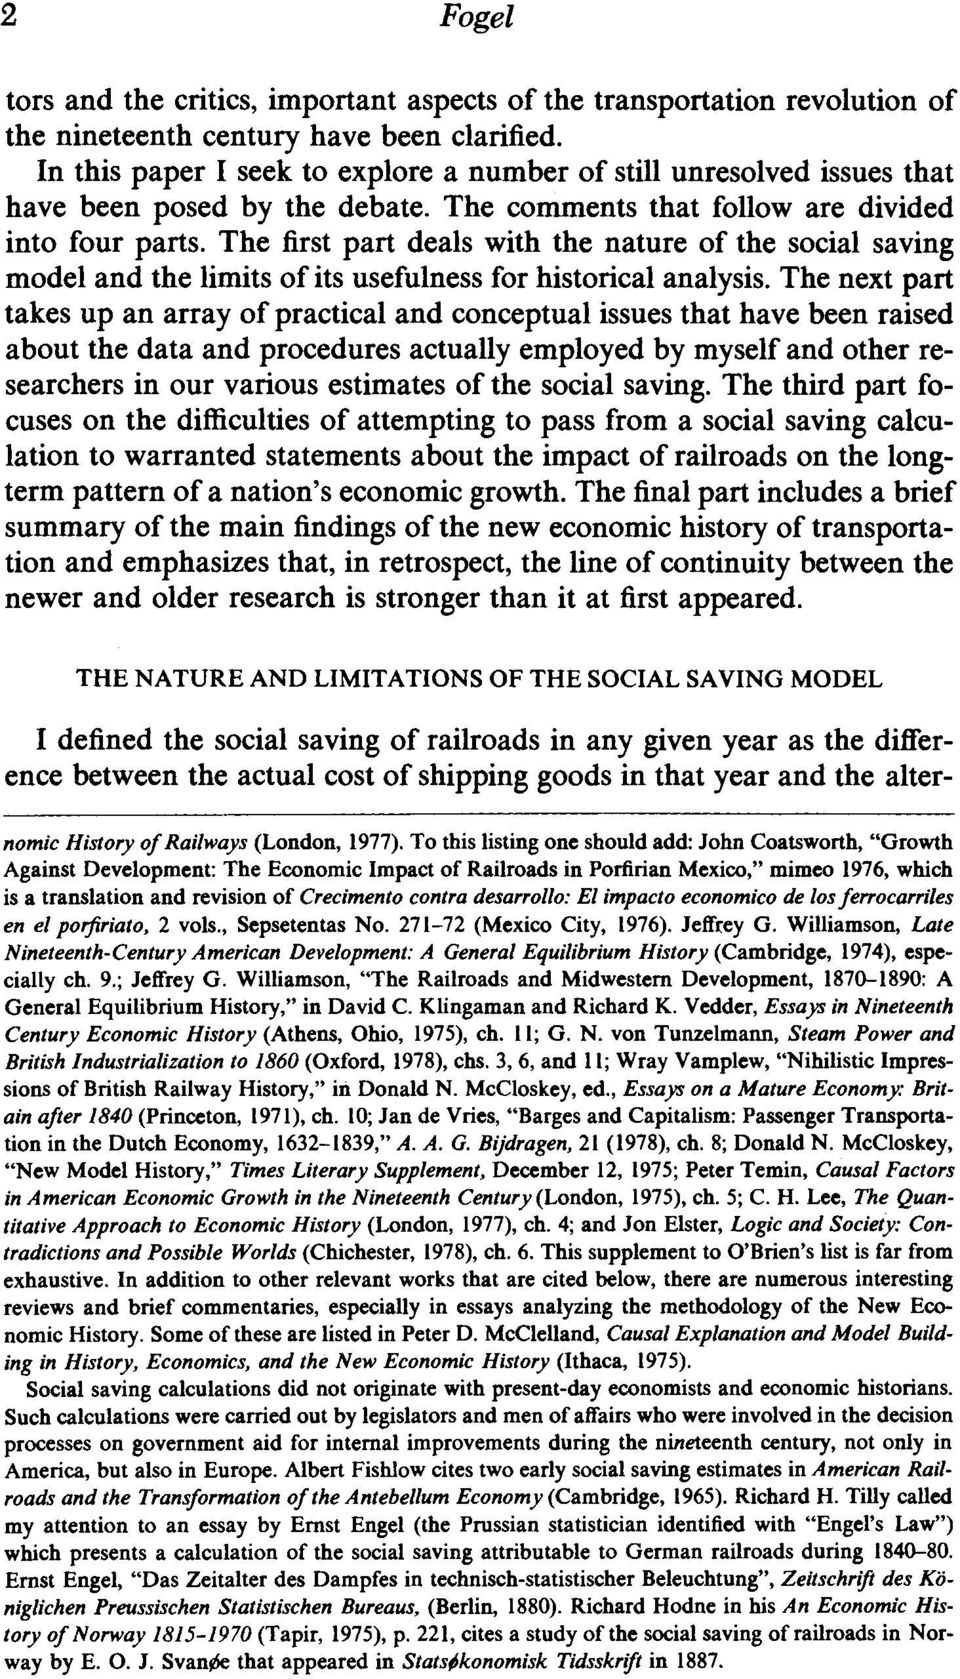 The first part deals with the nature of the social saving model and the limits of its usefulness for historical analysis.